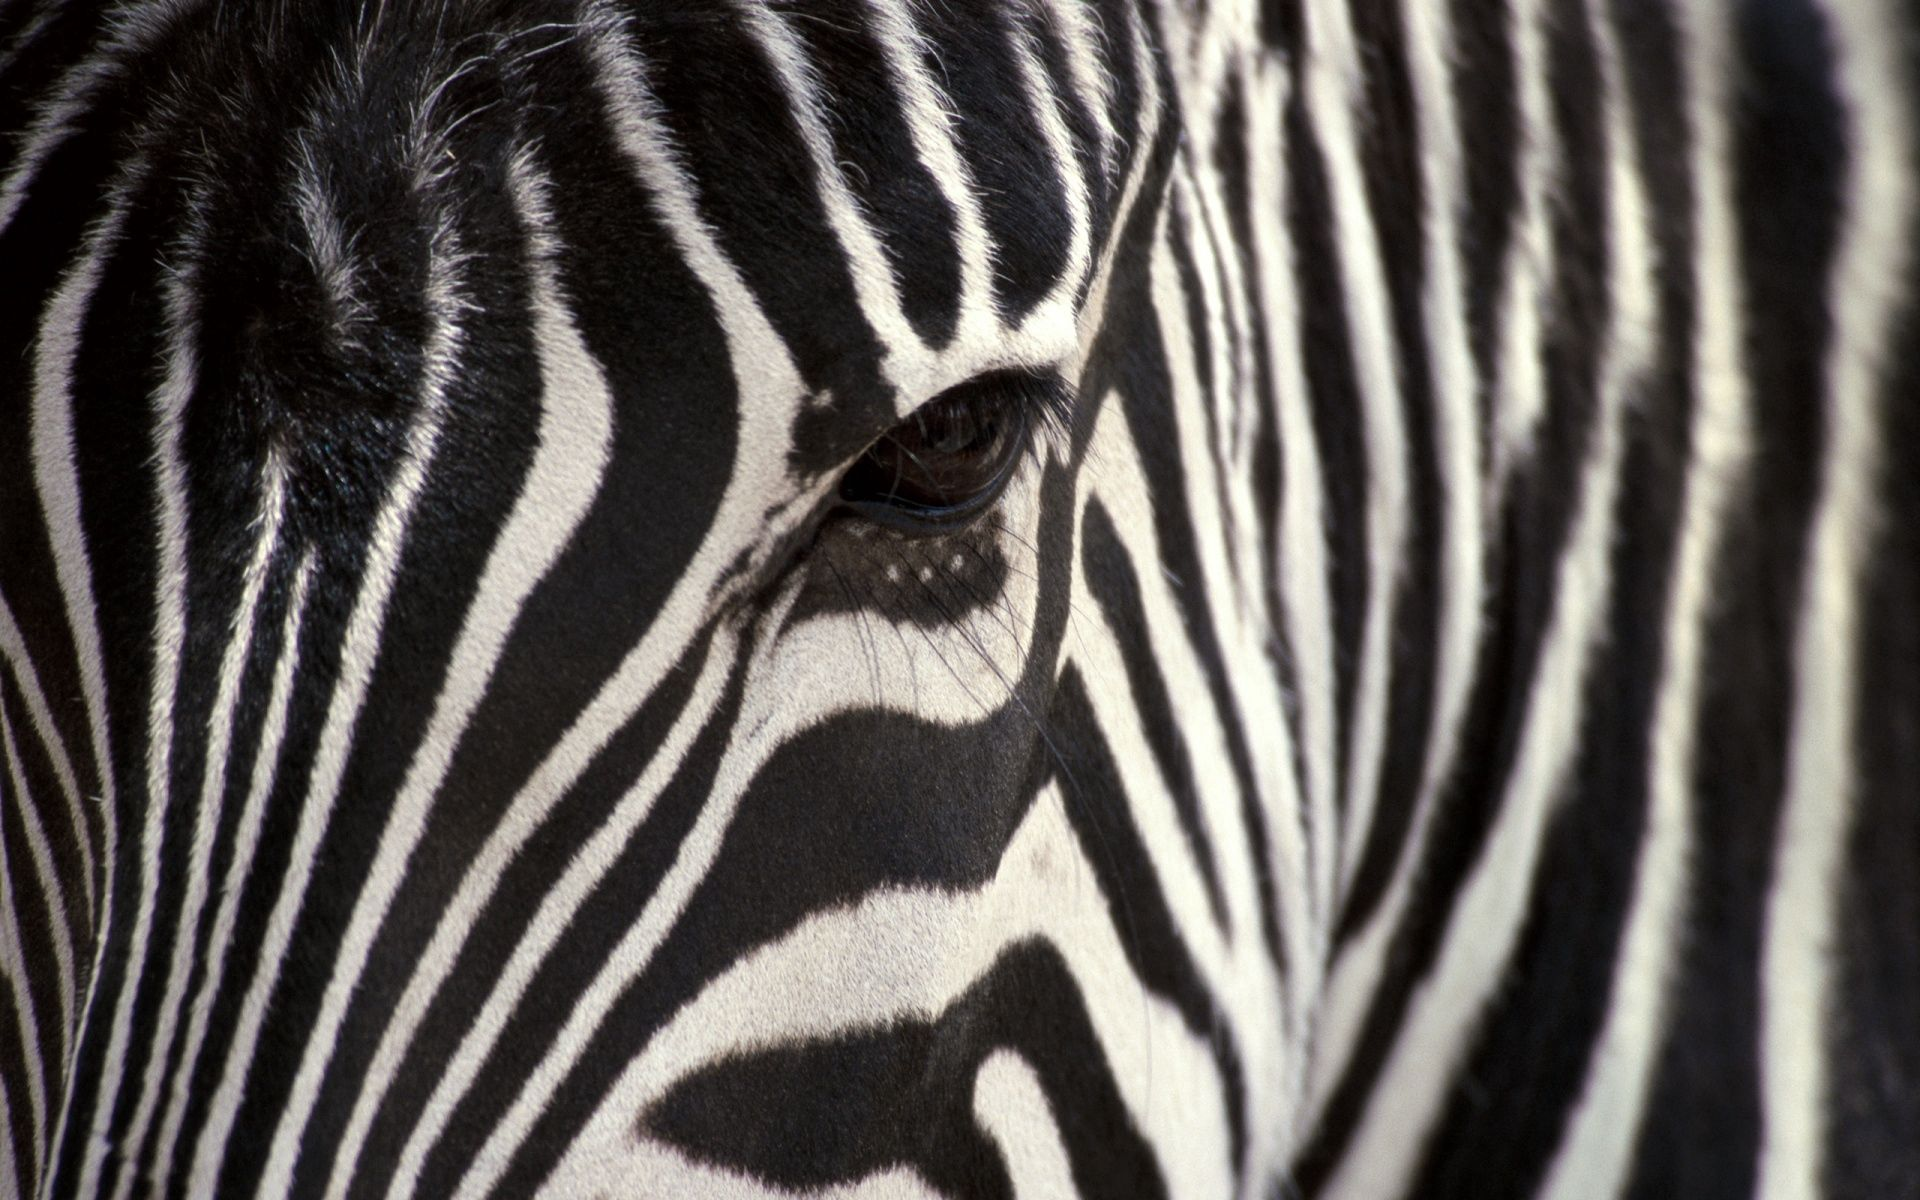 151194 download wallpaper Animals, Zebra, Eyes, Stripes, Streaks screensavers and pictures for free